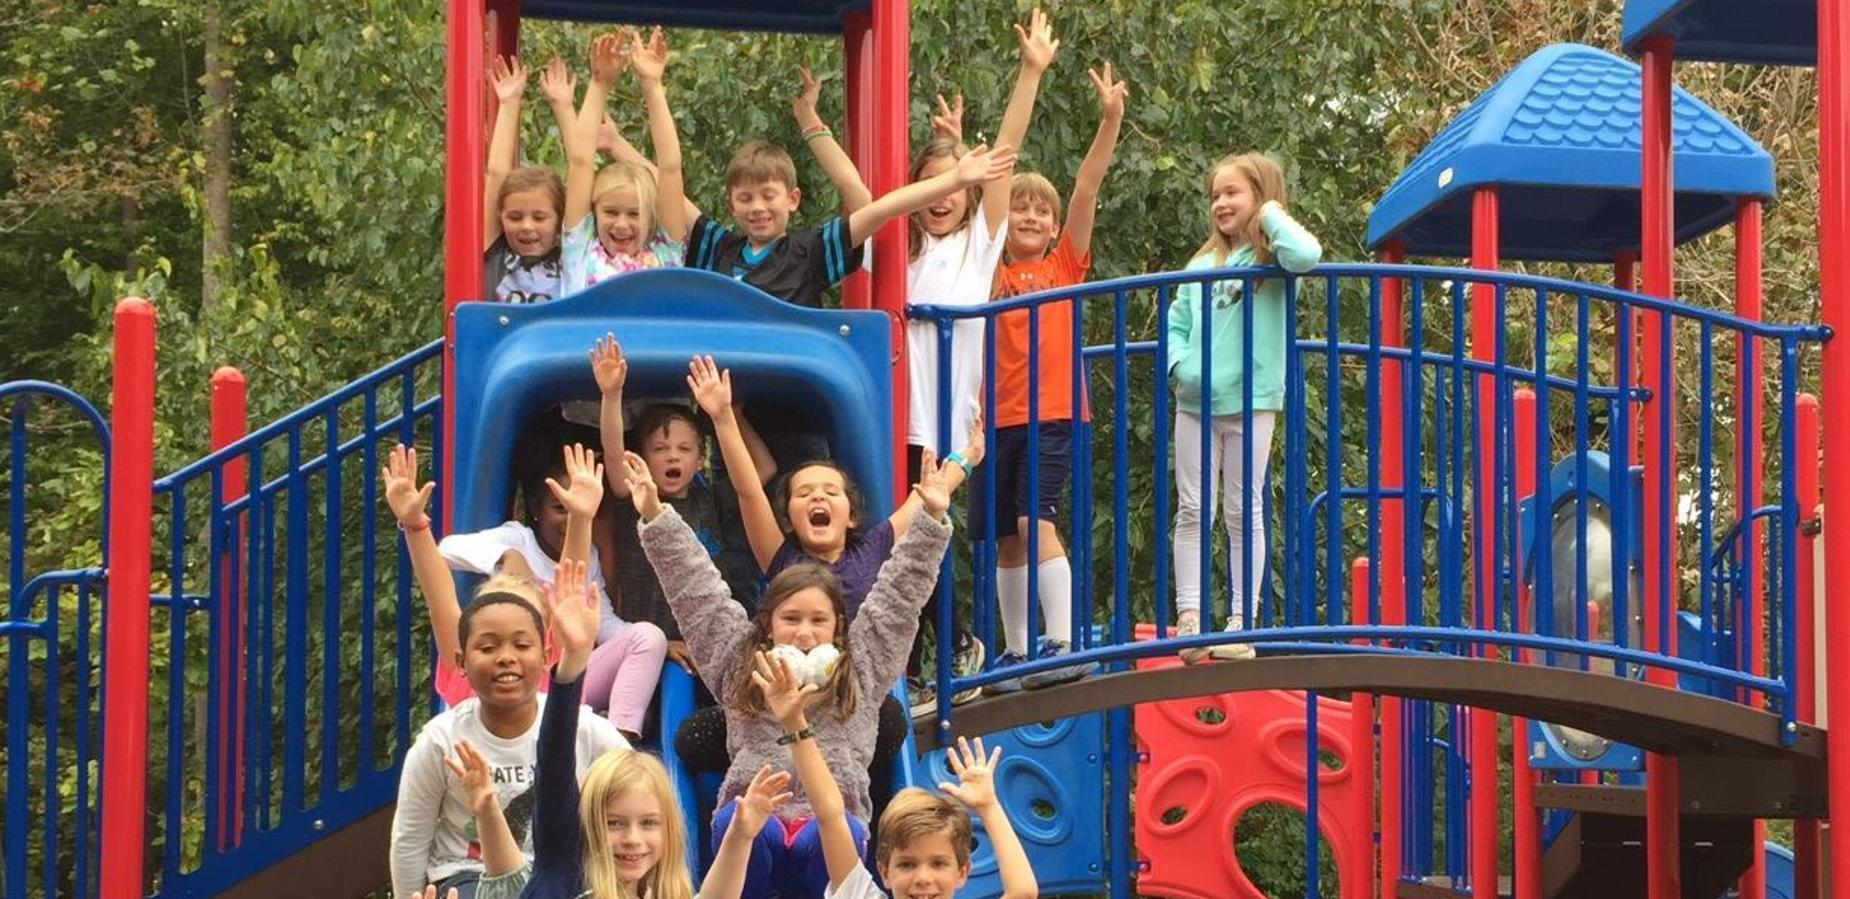 Students on the playground